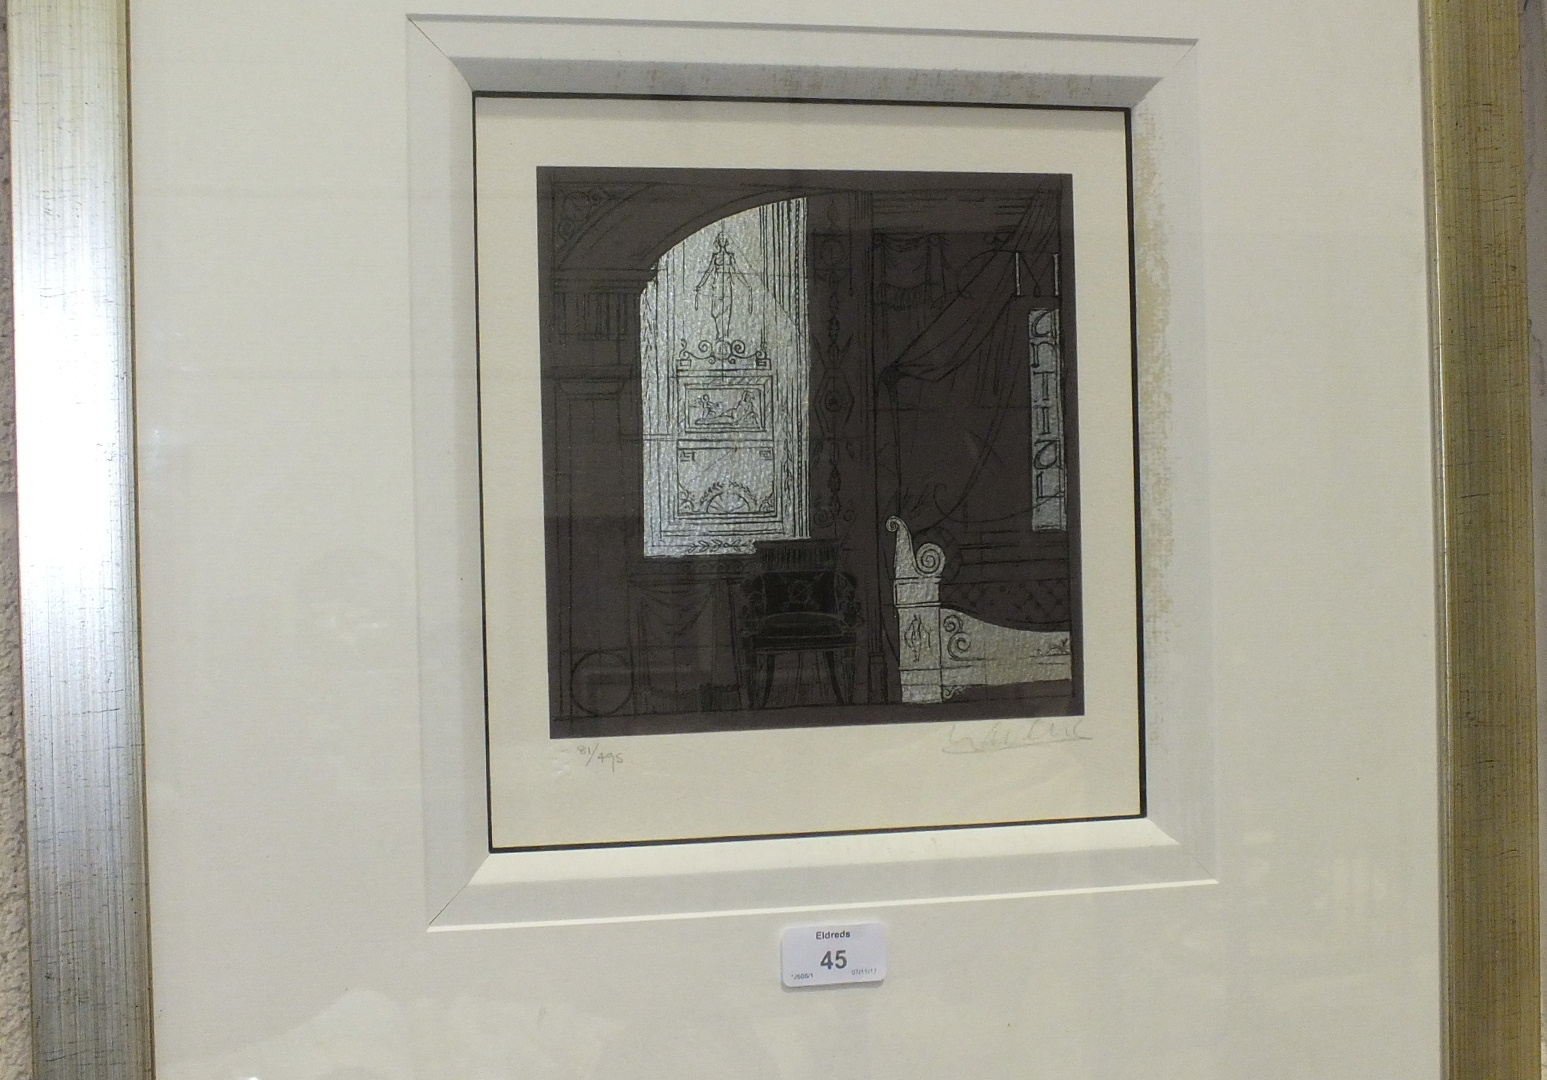 Lot 45 - After Lavene?, 'Architectural Interior Design' limited edition print, 303/495, signed in pencil